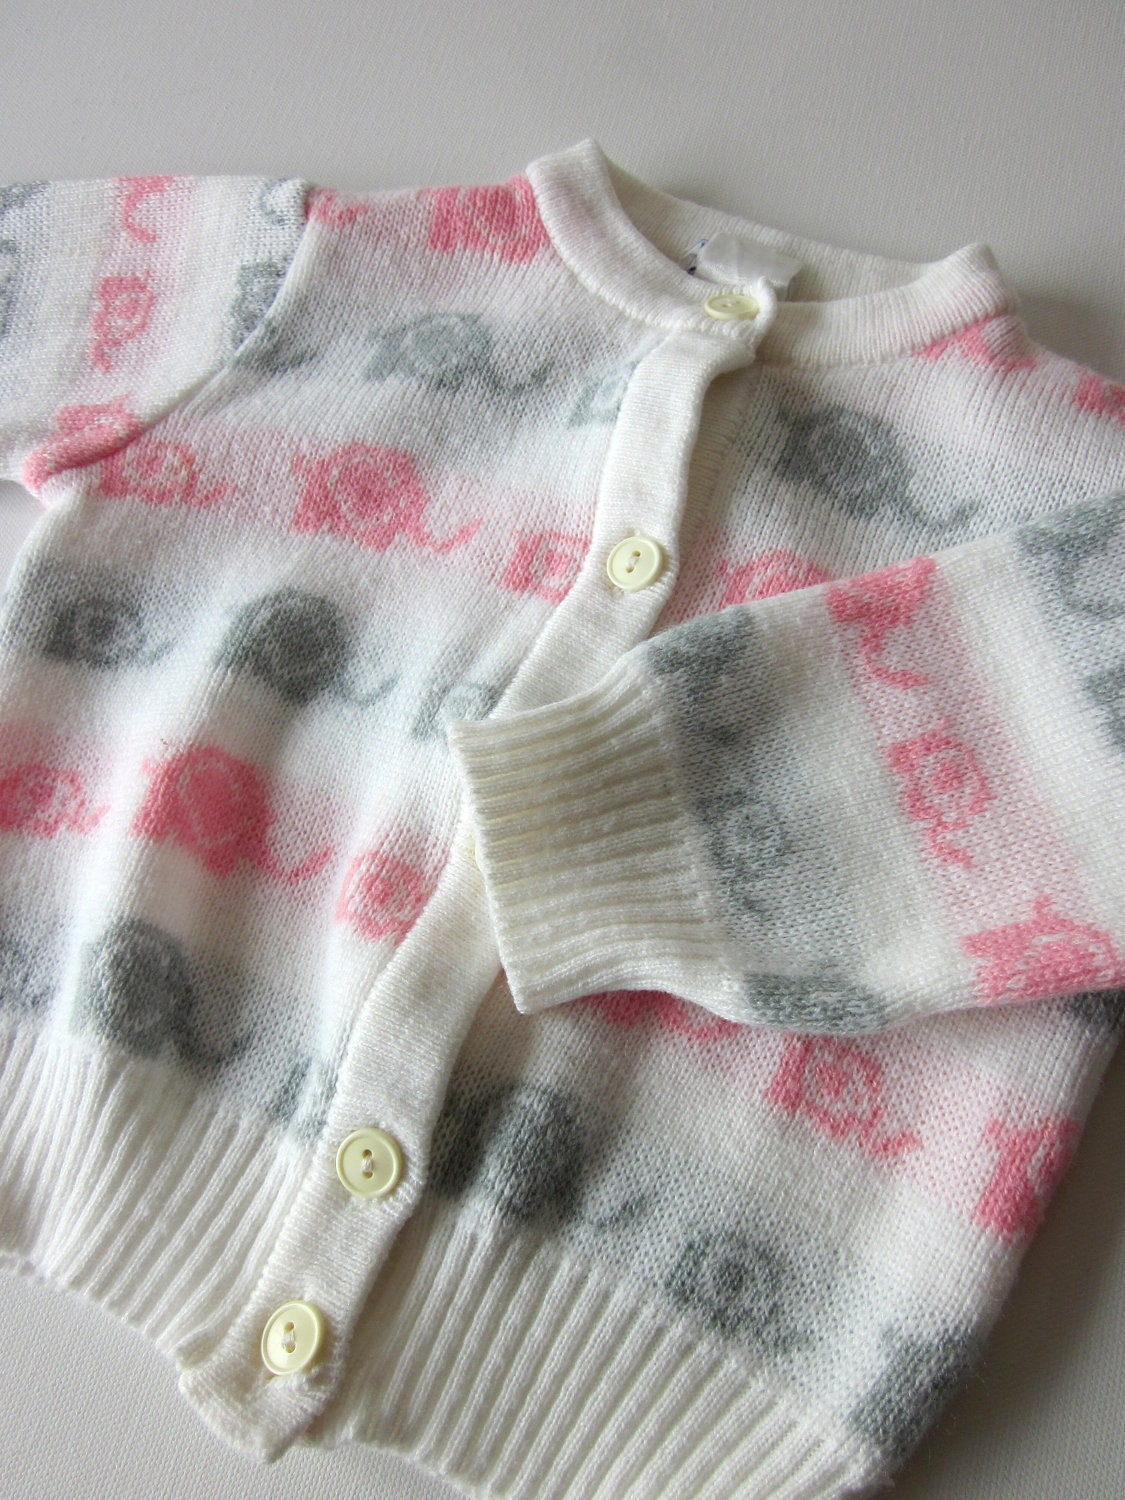 Vintage Infant Cardigan Sweater - Pink and Gray Elephants - Size 12 Months - NostalgiaMama